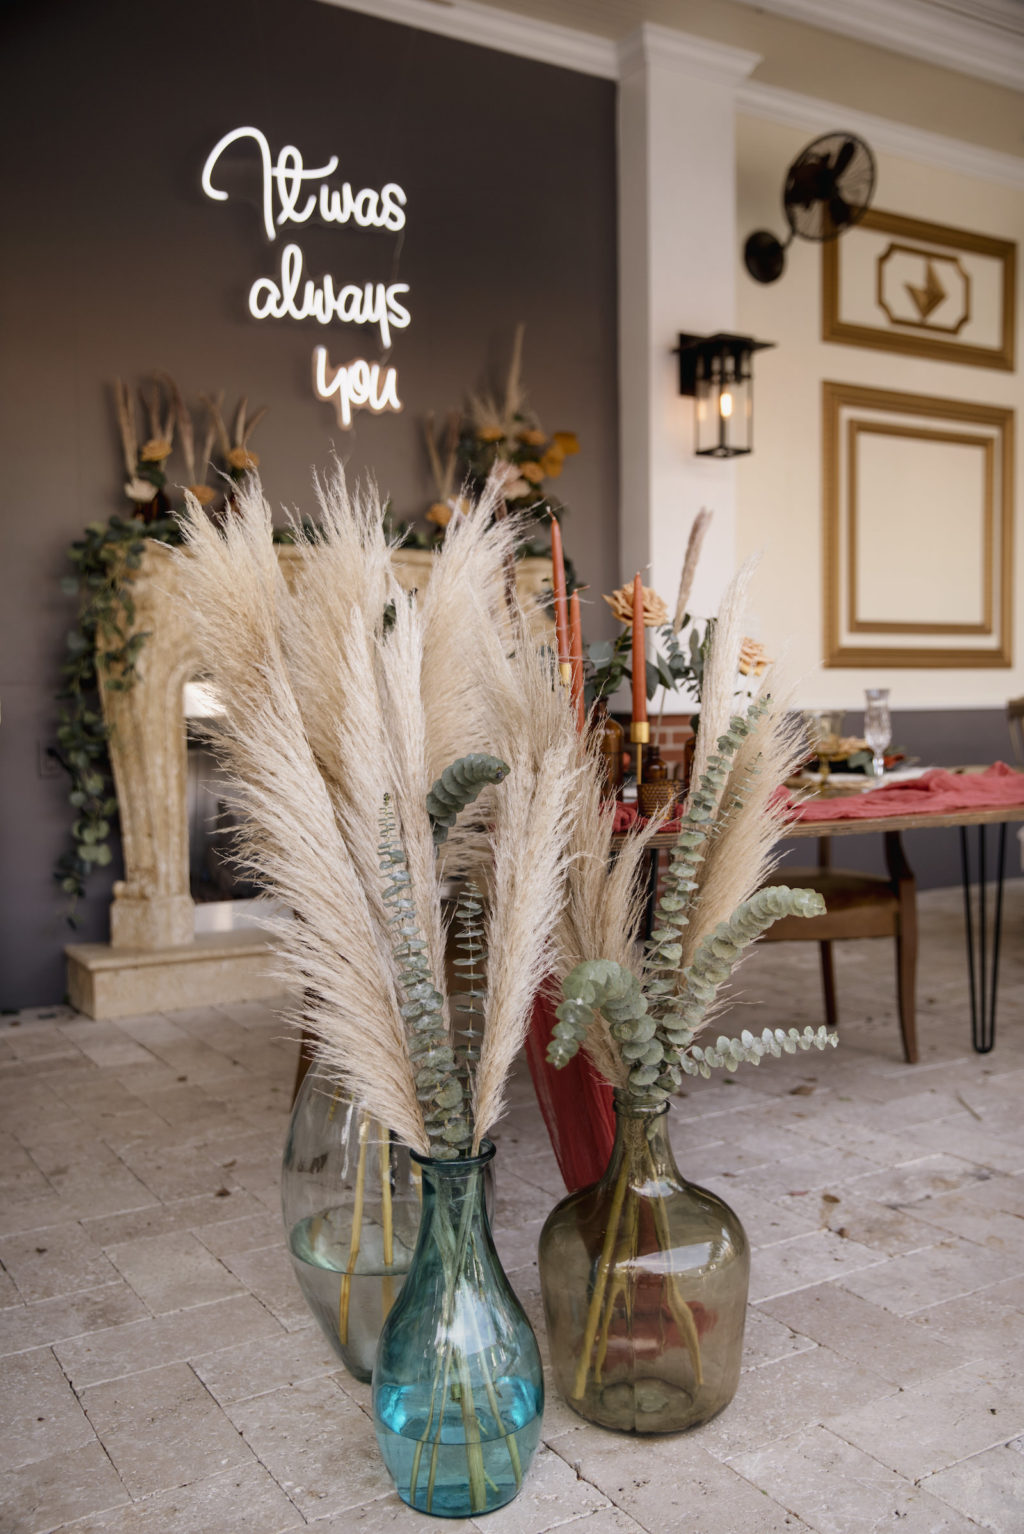 Neon Sign and Pampas Leaves in Large Clear Vases with Greenery   Boho Wedding Reception Décor Ideas